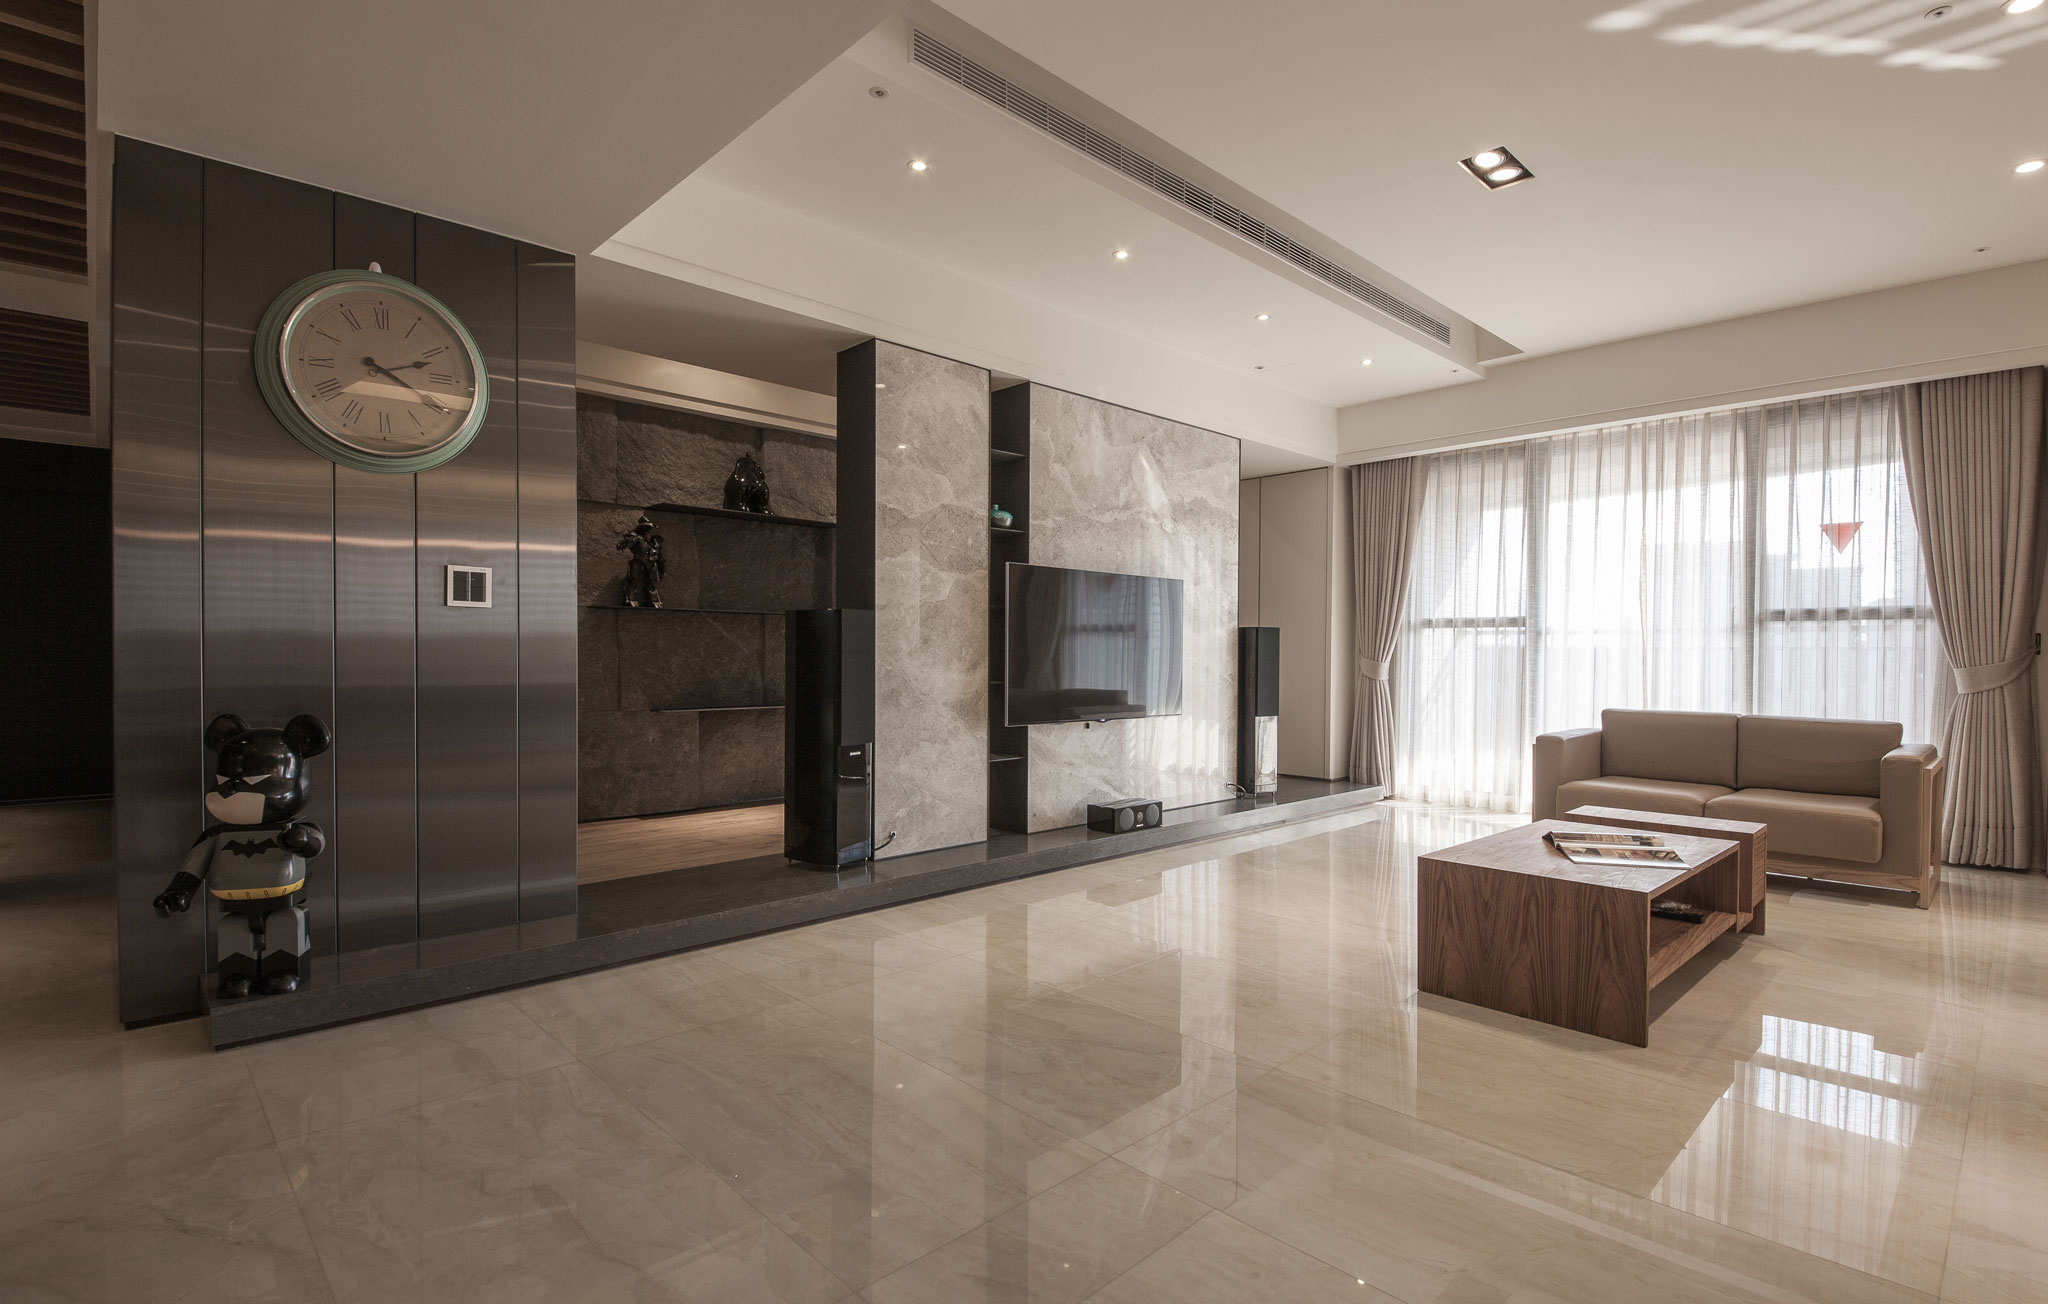 4560 square feet comfortable living space